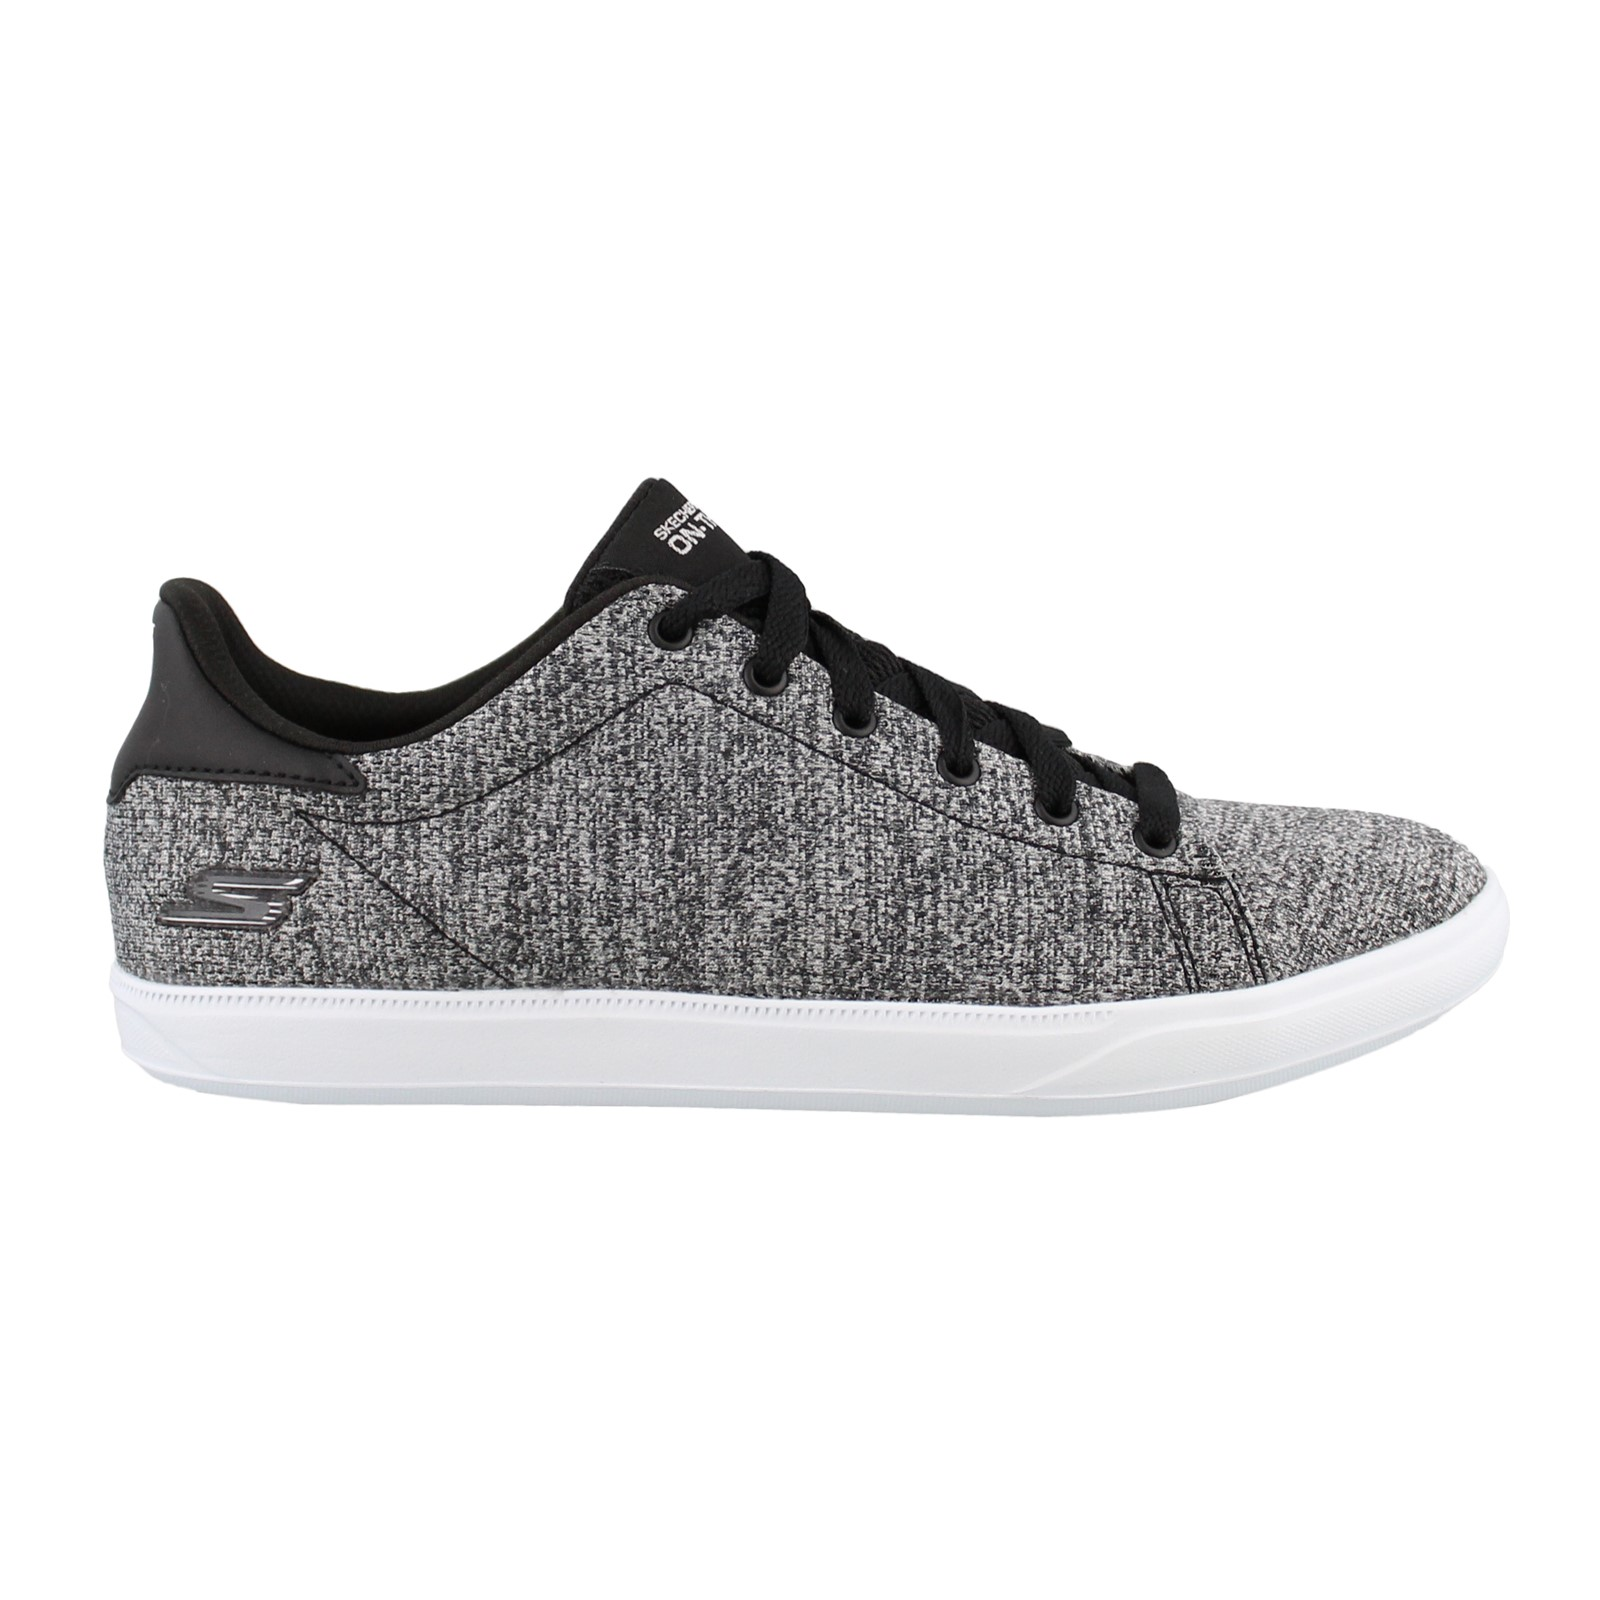 Women's Skechers Performance, On The Go Go Vulc 2 Pivot Lace up Sneakers